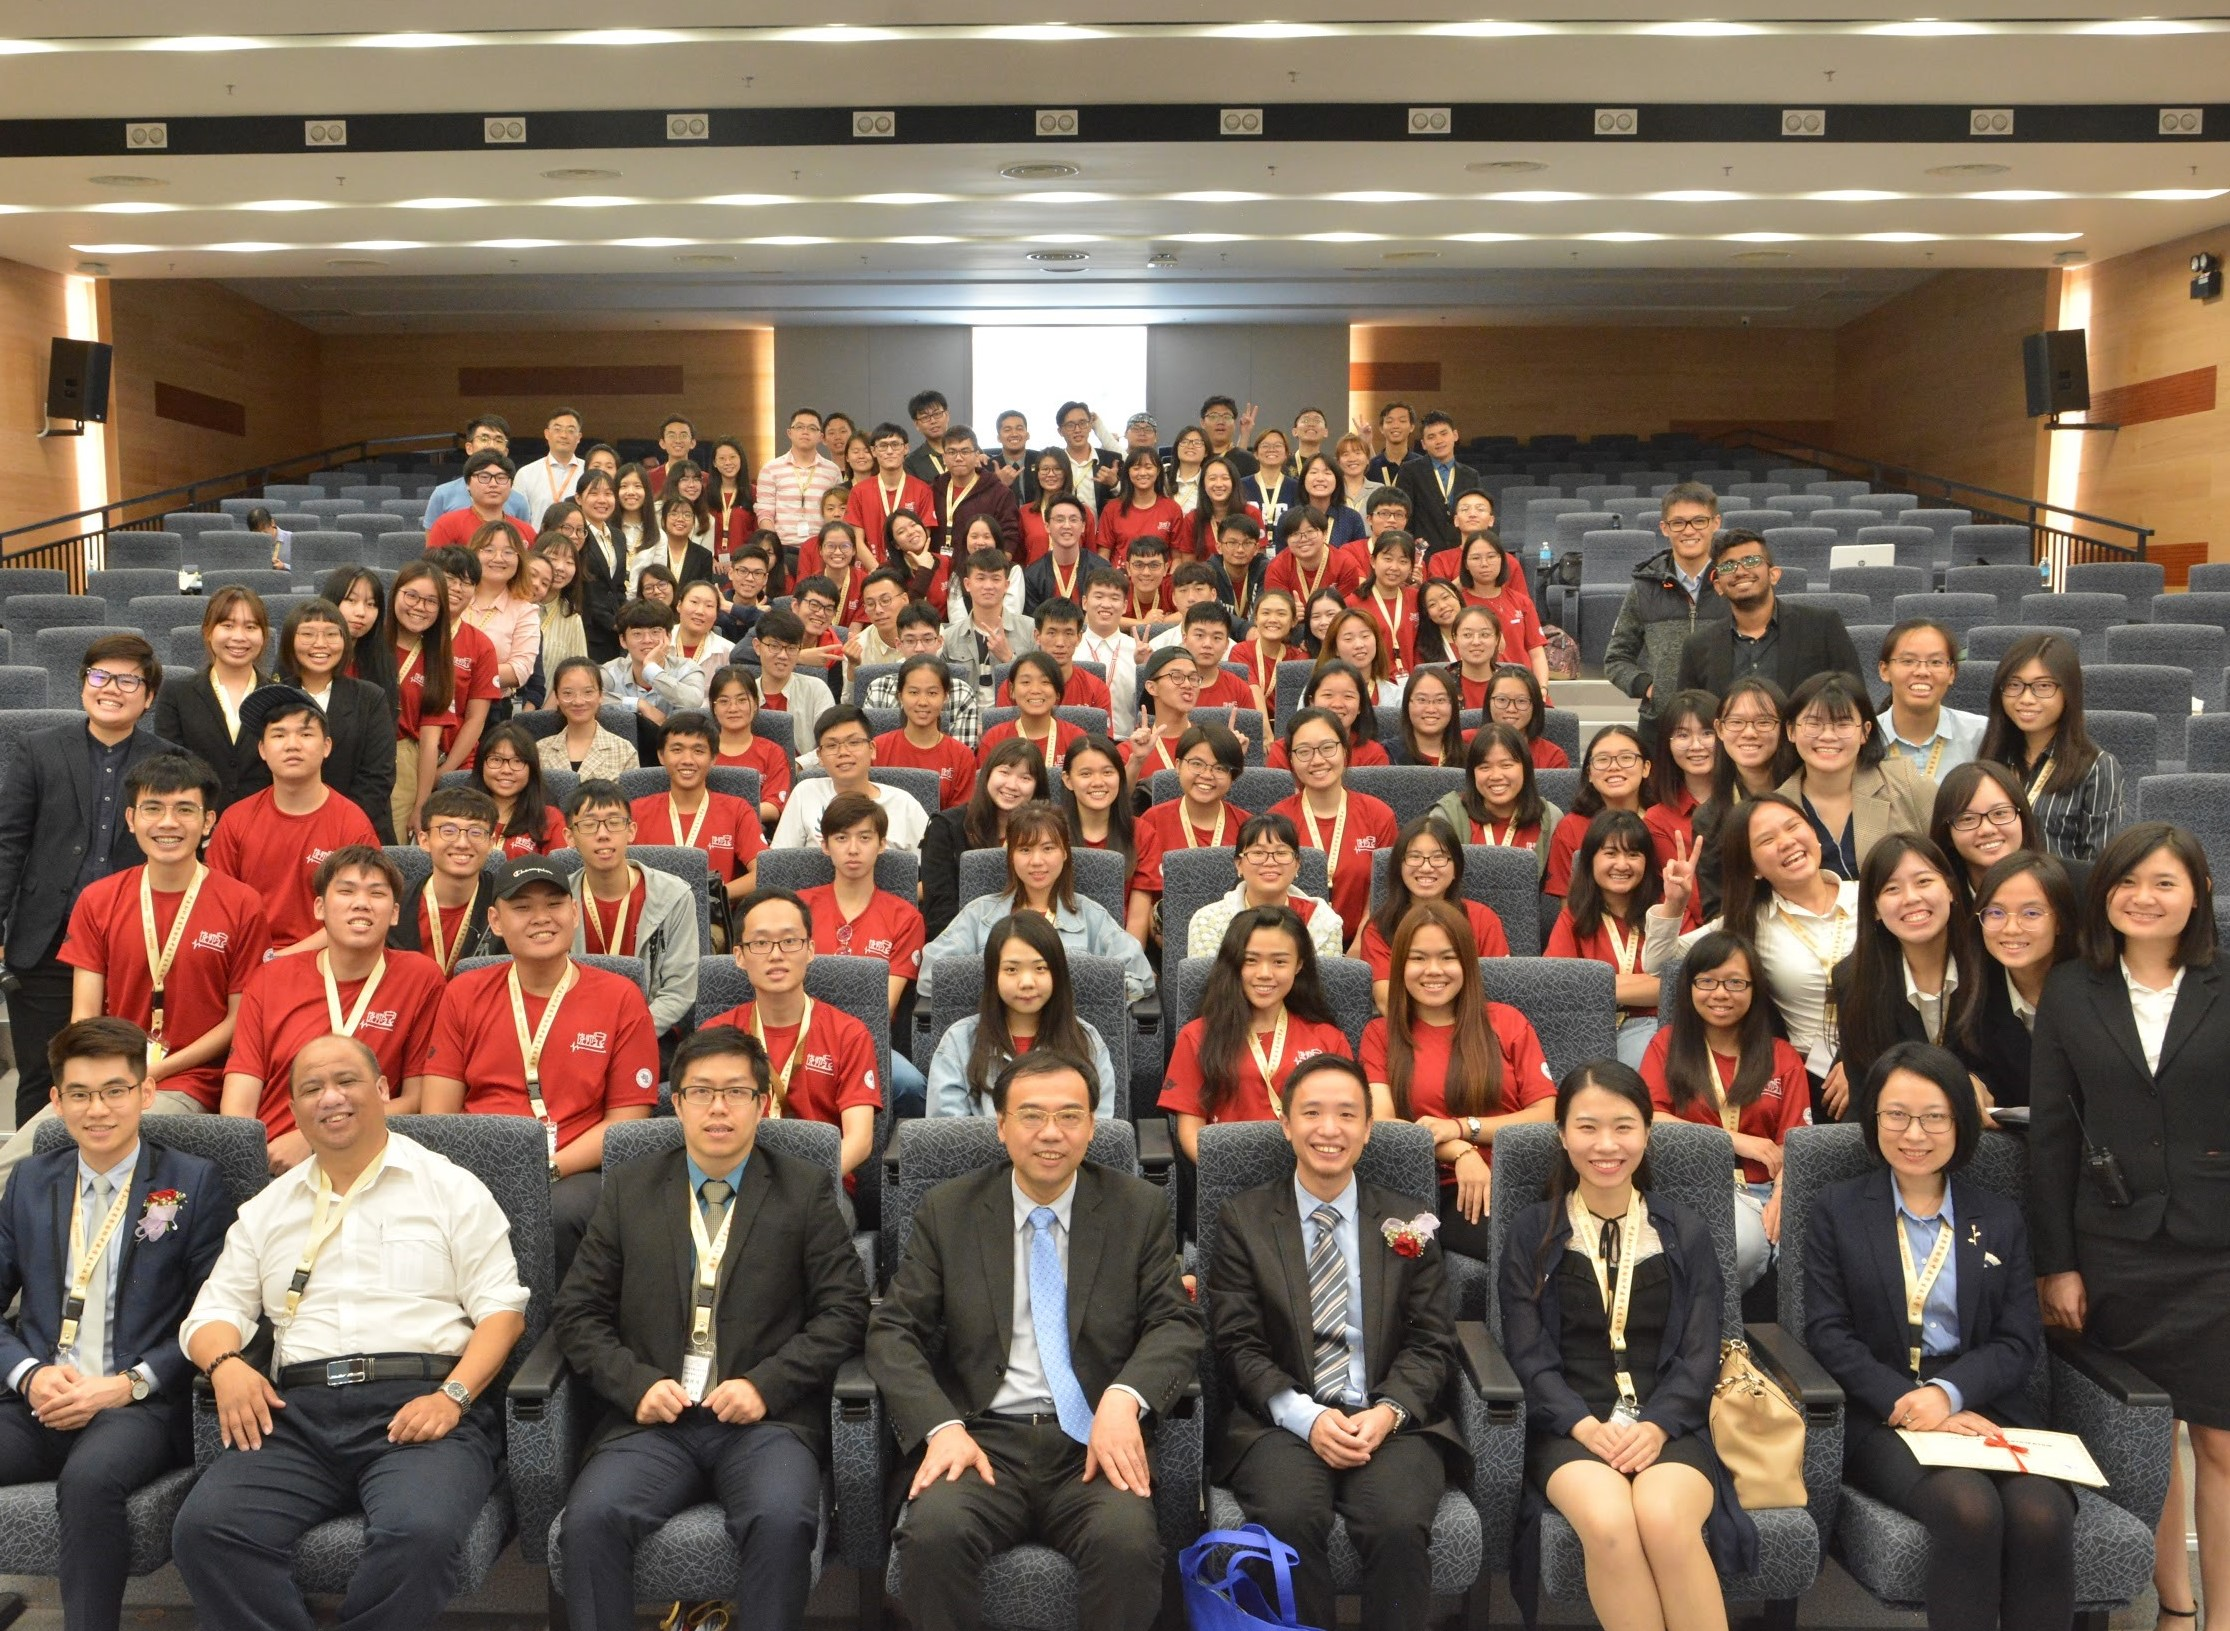 IMU students participated in a camp and tournament for Chinese Medicine students to share their experiences and network with one another.